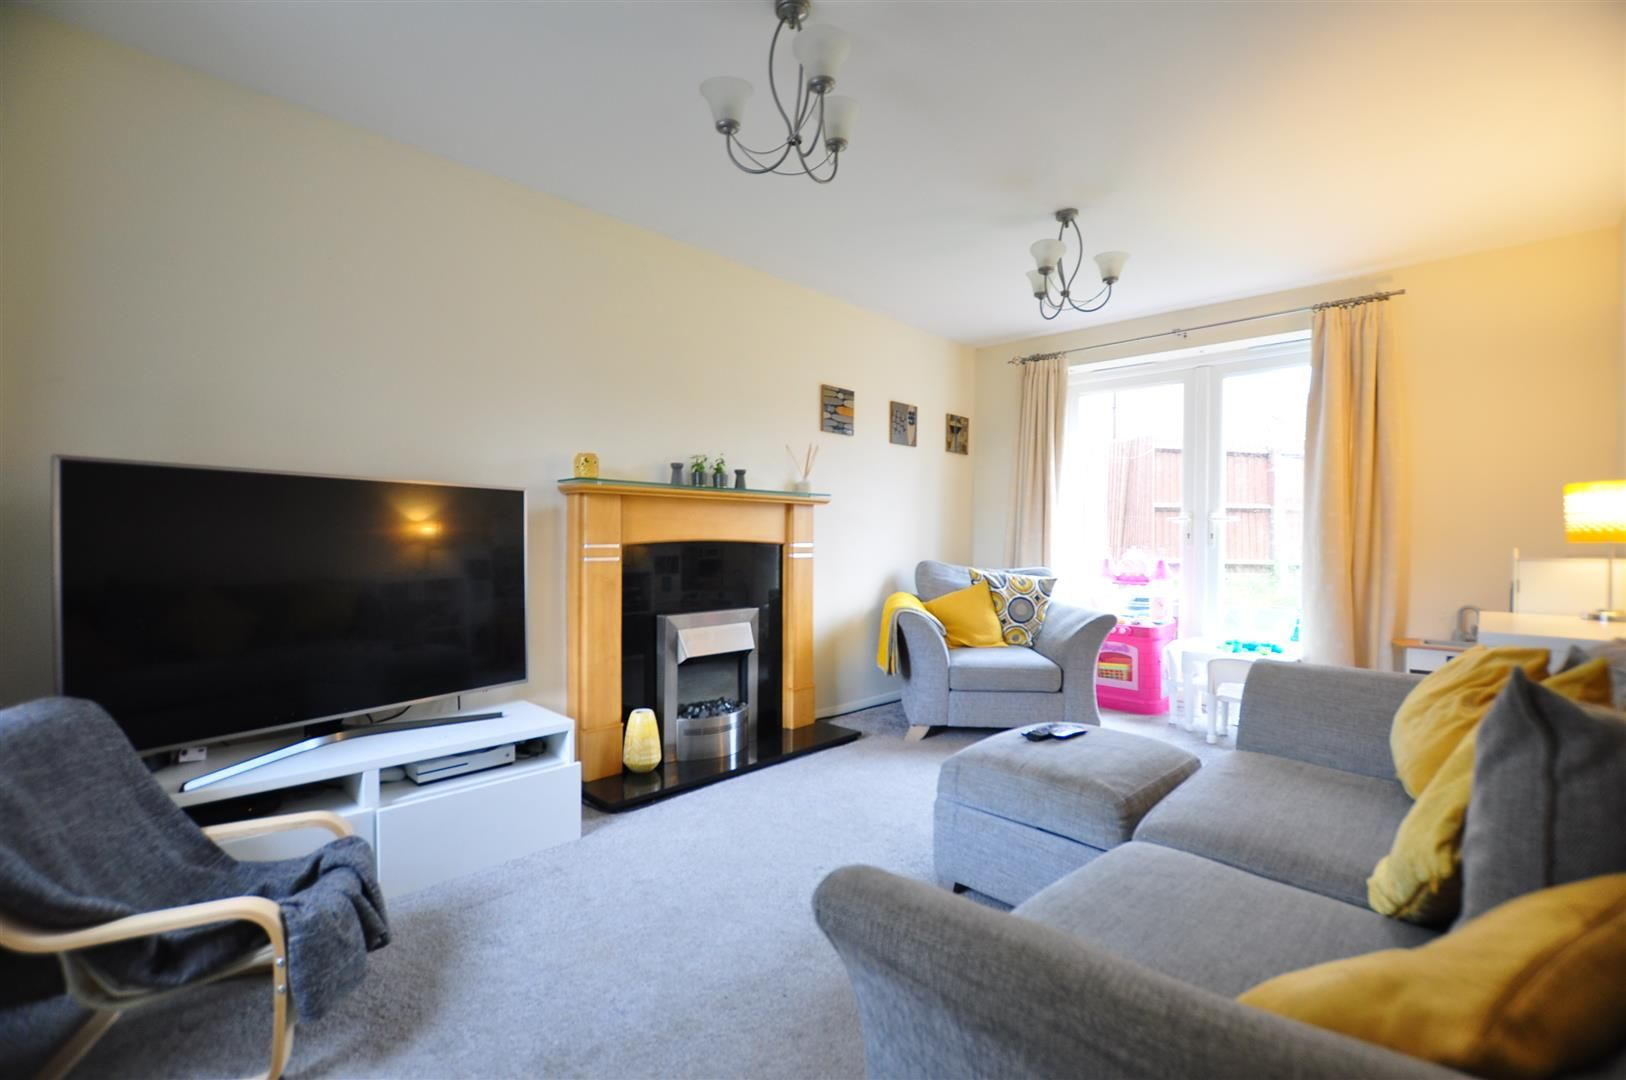 3 bed end-of-terrace for sale 2